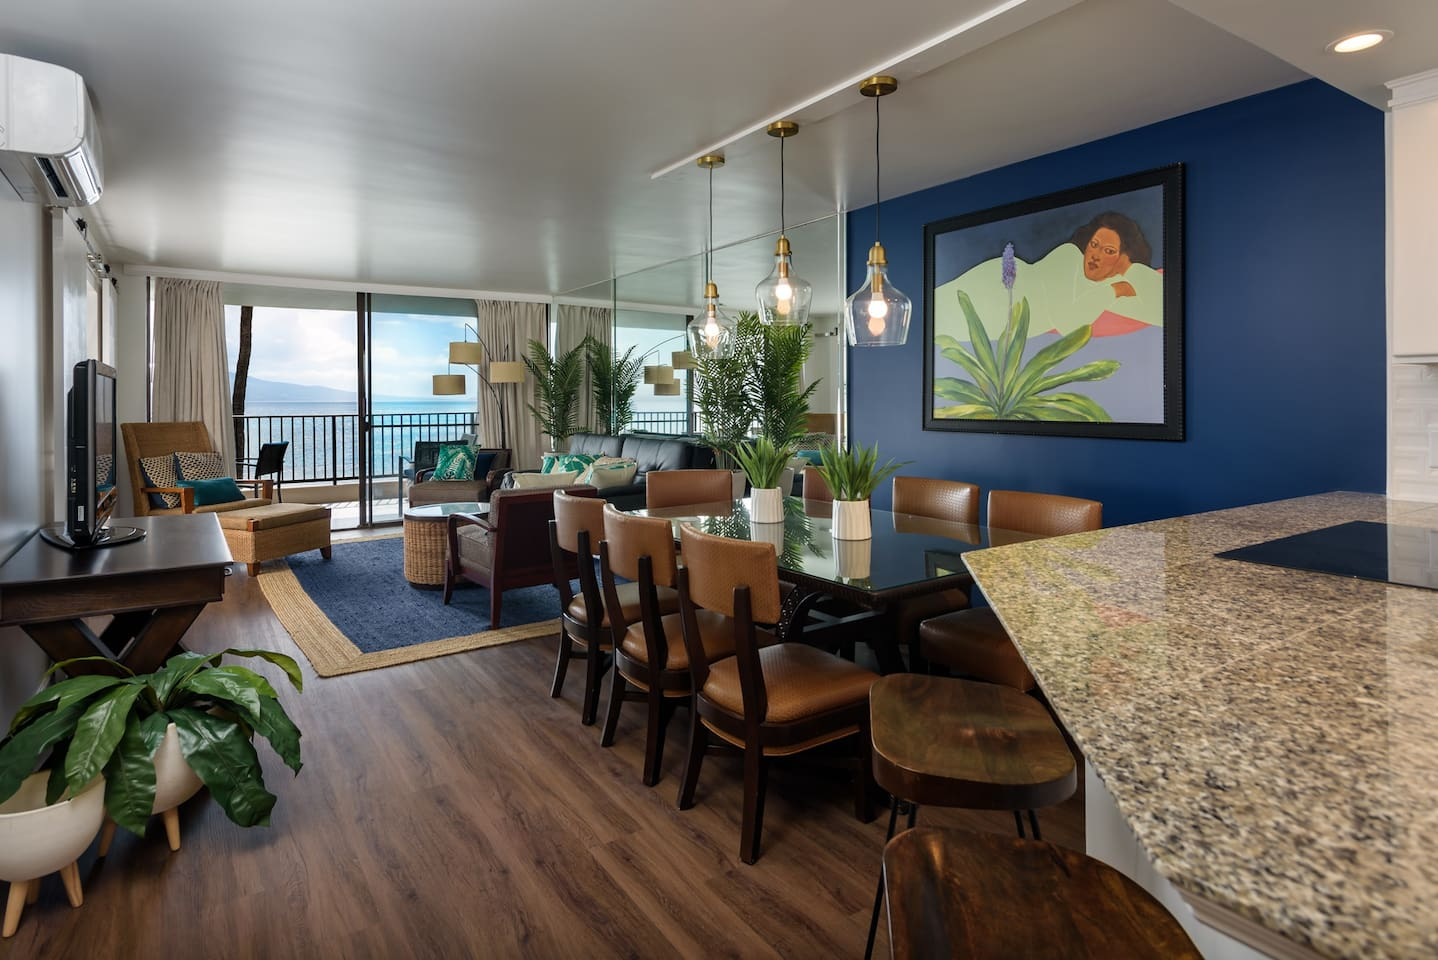 Living room and dining area looking towards the ocean.